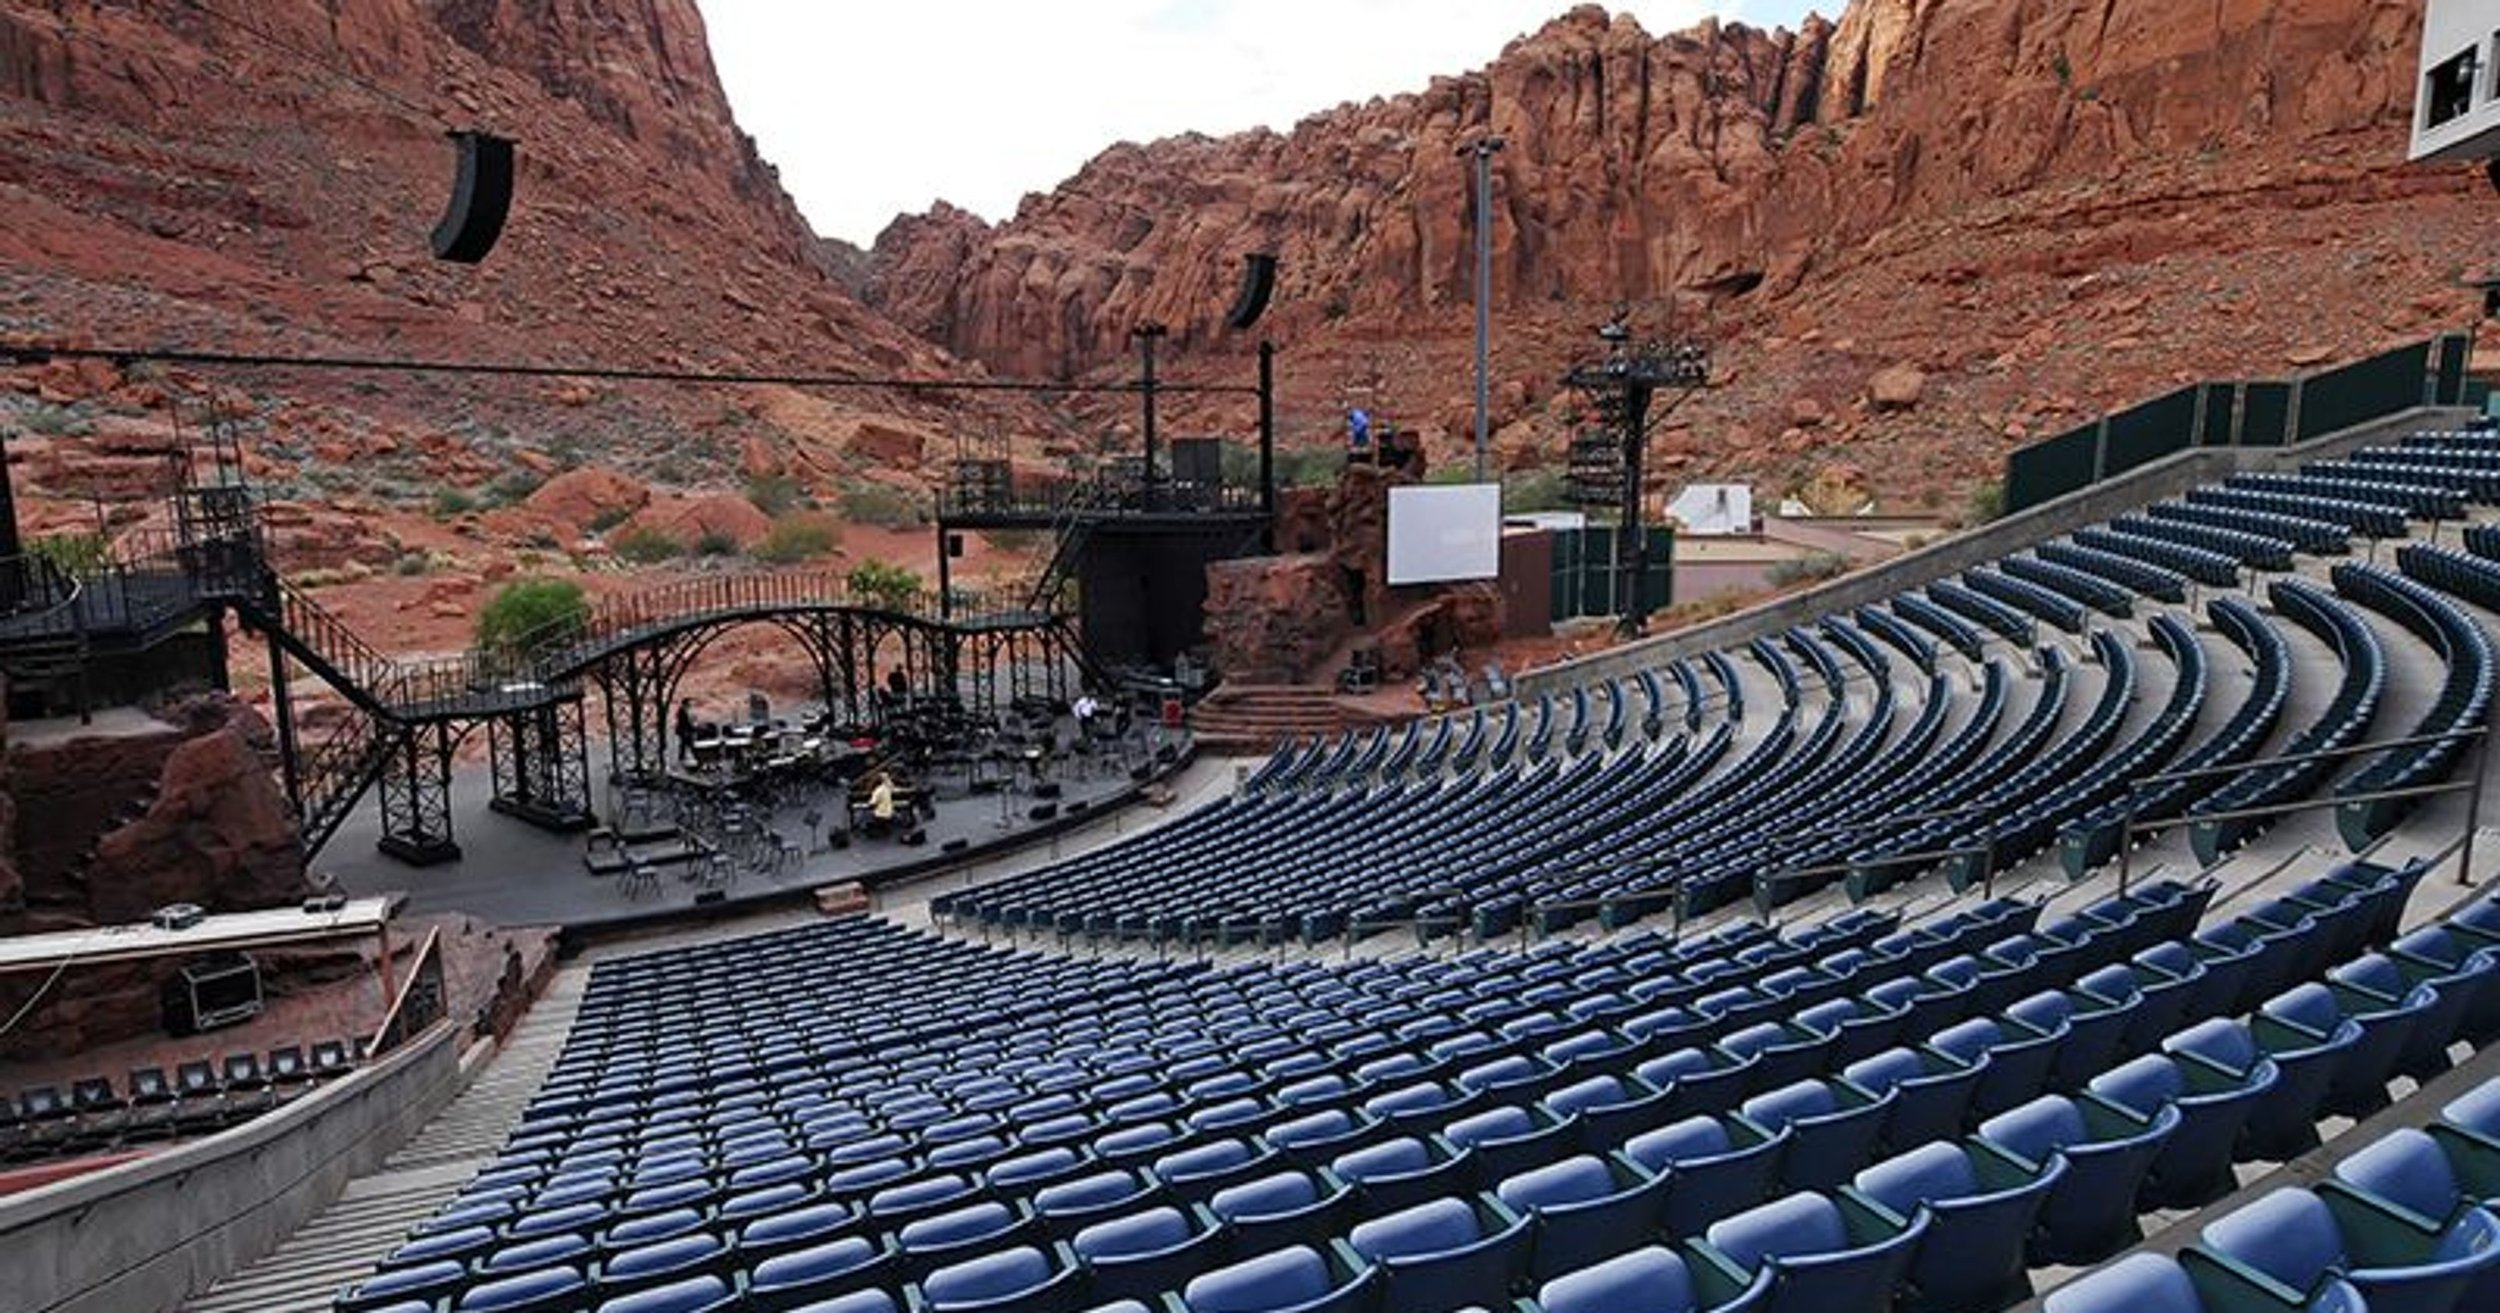 Performing Arts - St. George has become renowned for it's world class performing arts experiences, ranging from Broadway in the Desert, symphonies, playhouses and more.Learn More